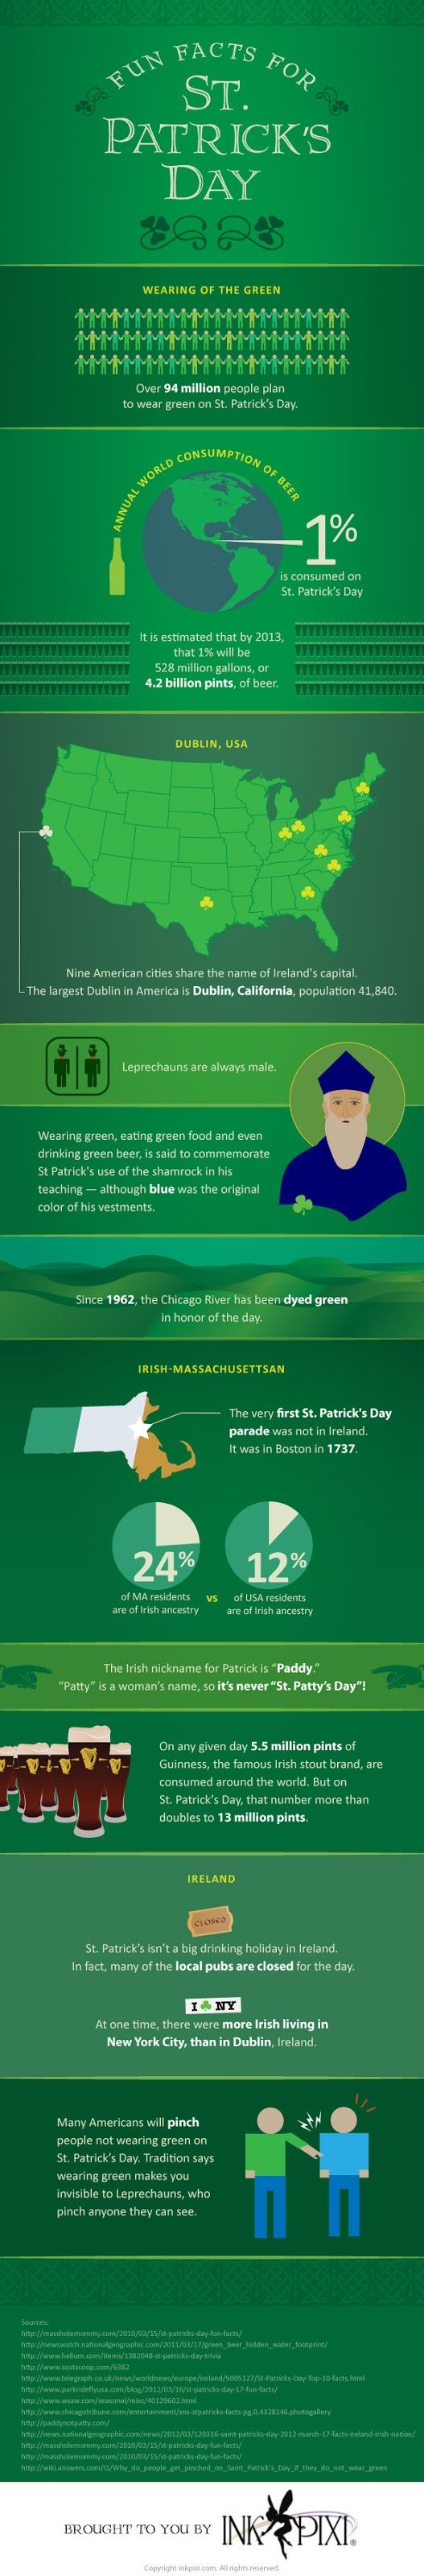 While many Americans consider St. Patrick's Day a celebration of Irish culture, the holiday's original roots in Ireland actually began as a holy day.